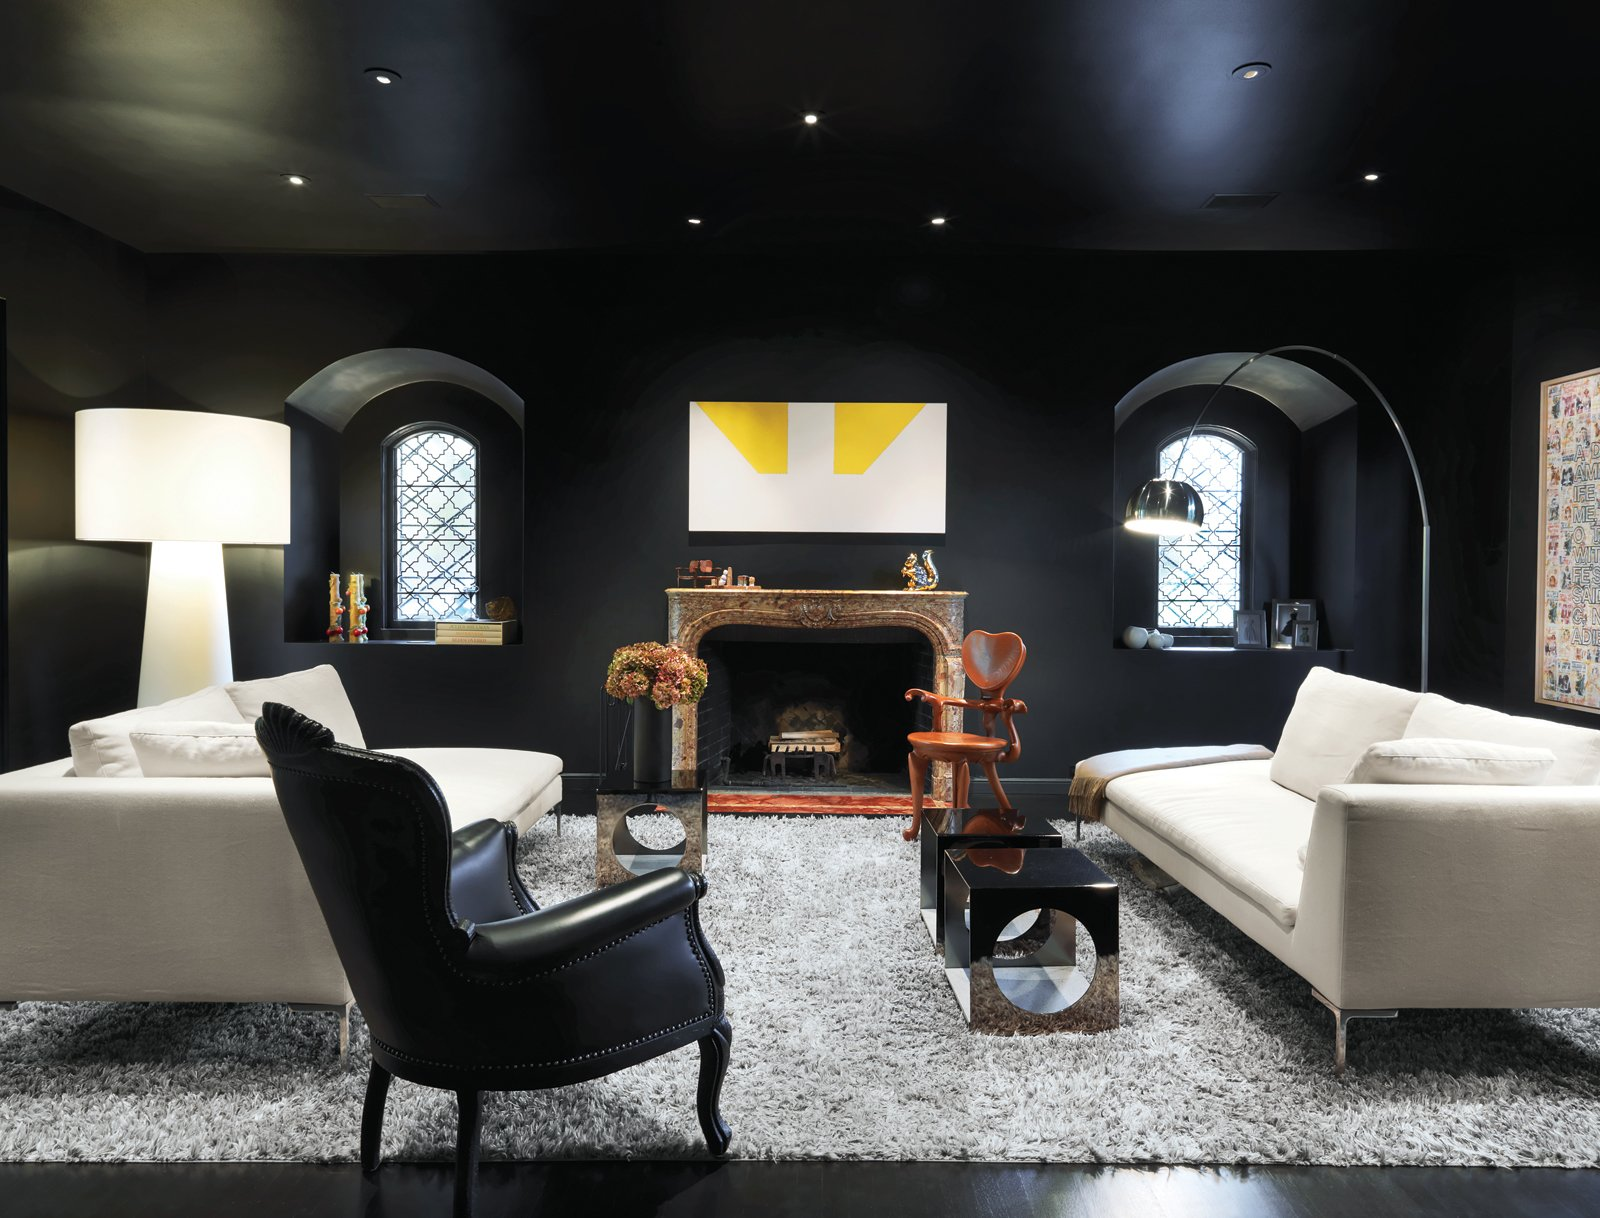 Turin embraced the dark in her striking living room—the deep paint is Le Corbusier's 4320J from Les Couleurs Suisse. An iconic Arco lamp by Achille and Pier Giacomo Castiglioni for Flos, Charles sofas by Antonio Citterio for B&B Italia, an Extra Big Shadow floor lamp by Marcel Wanders for Cappellini, and a painting over the mantel by Martin Barré shed a little light.  Living Rooms by Lara Deam from A Traditional Home and an Impeccable Eye